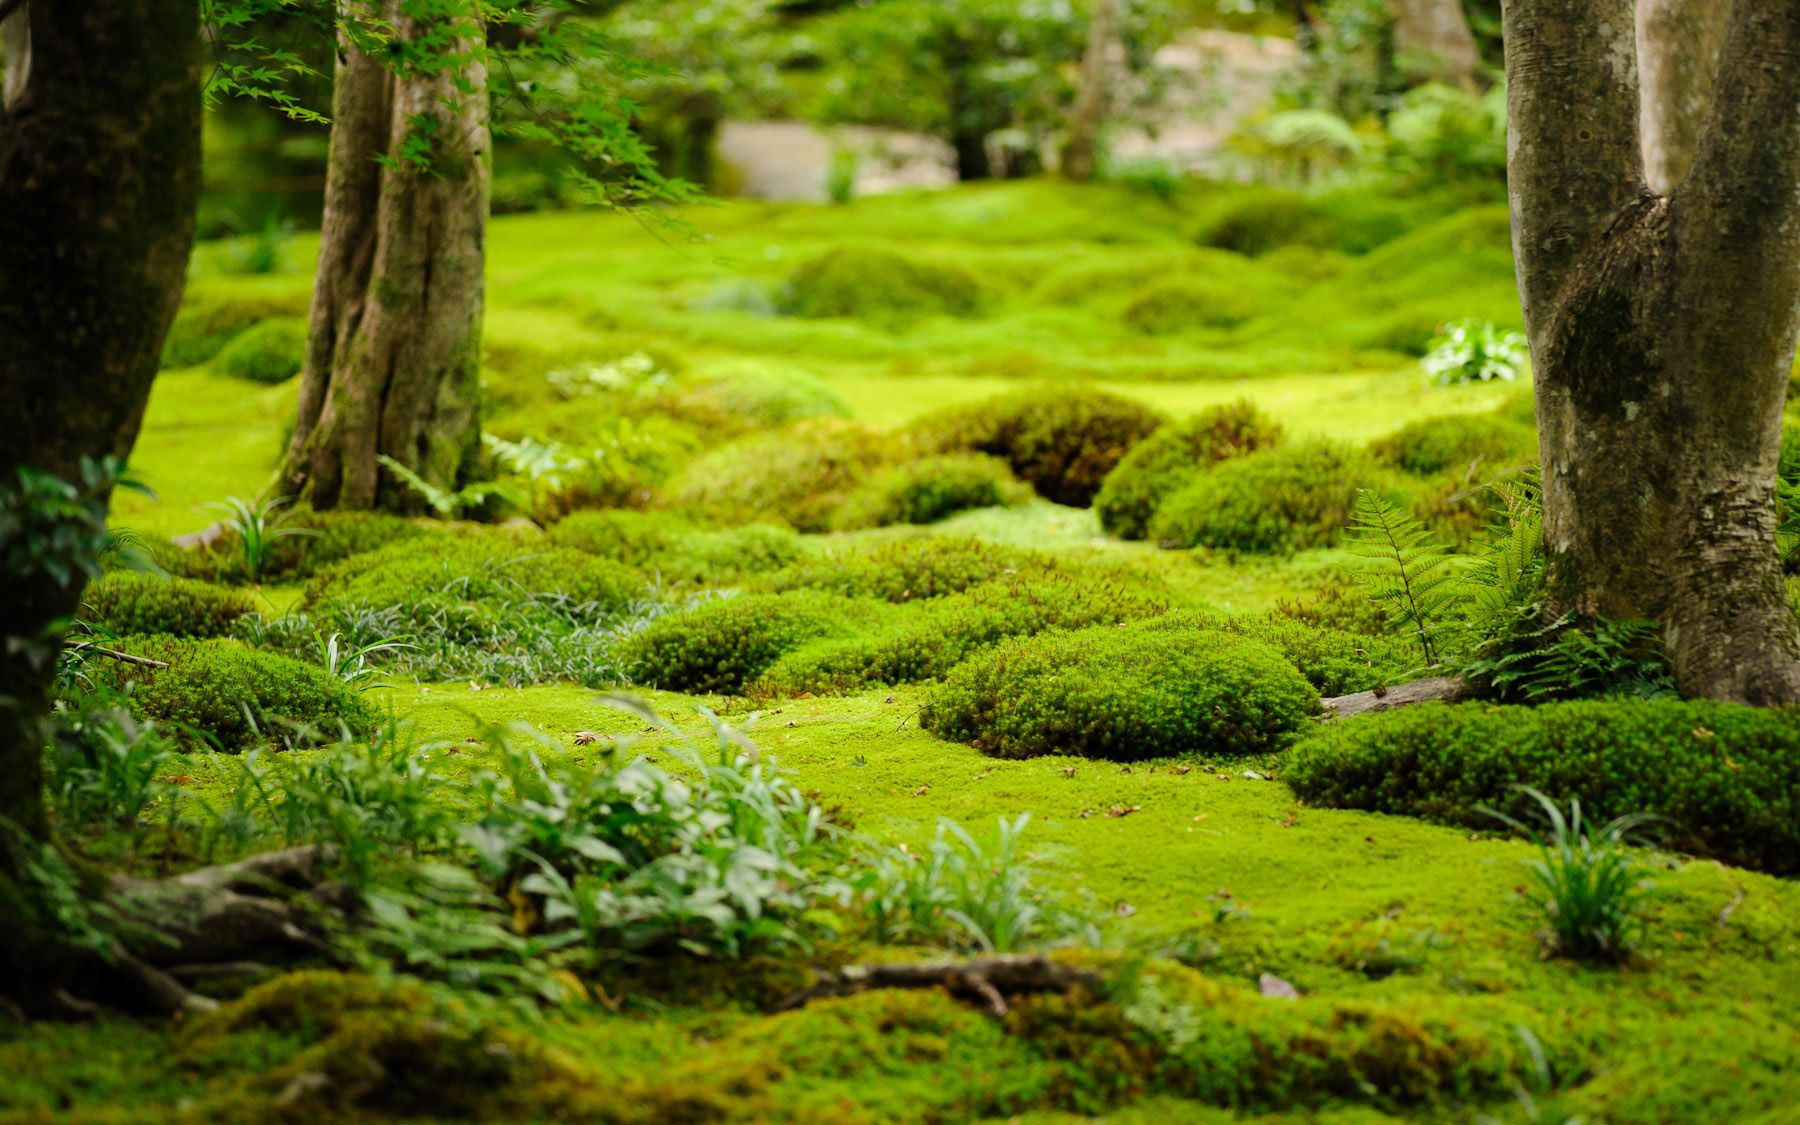 moss garden japan | Moss garden, Growing moss, Ground cover plants